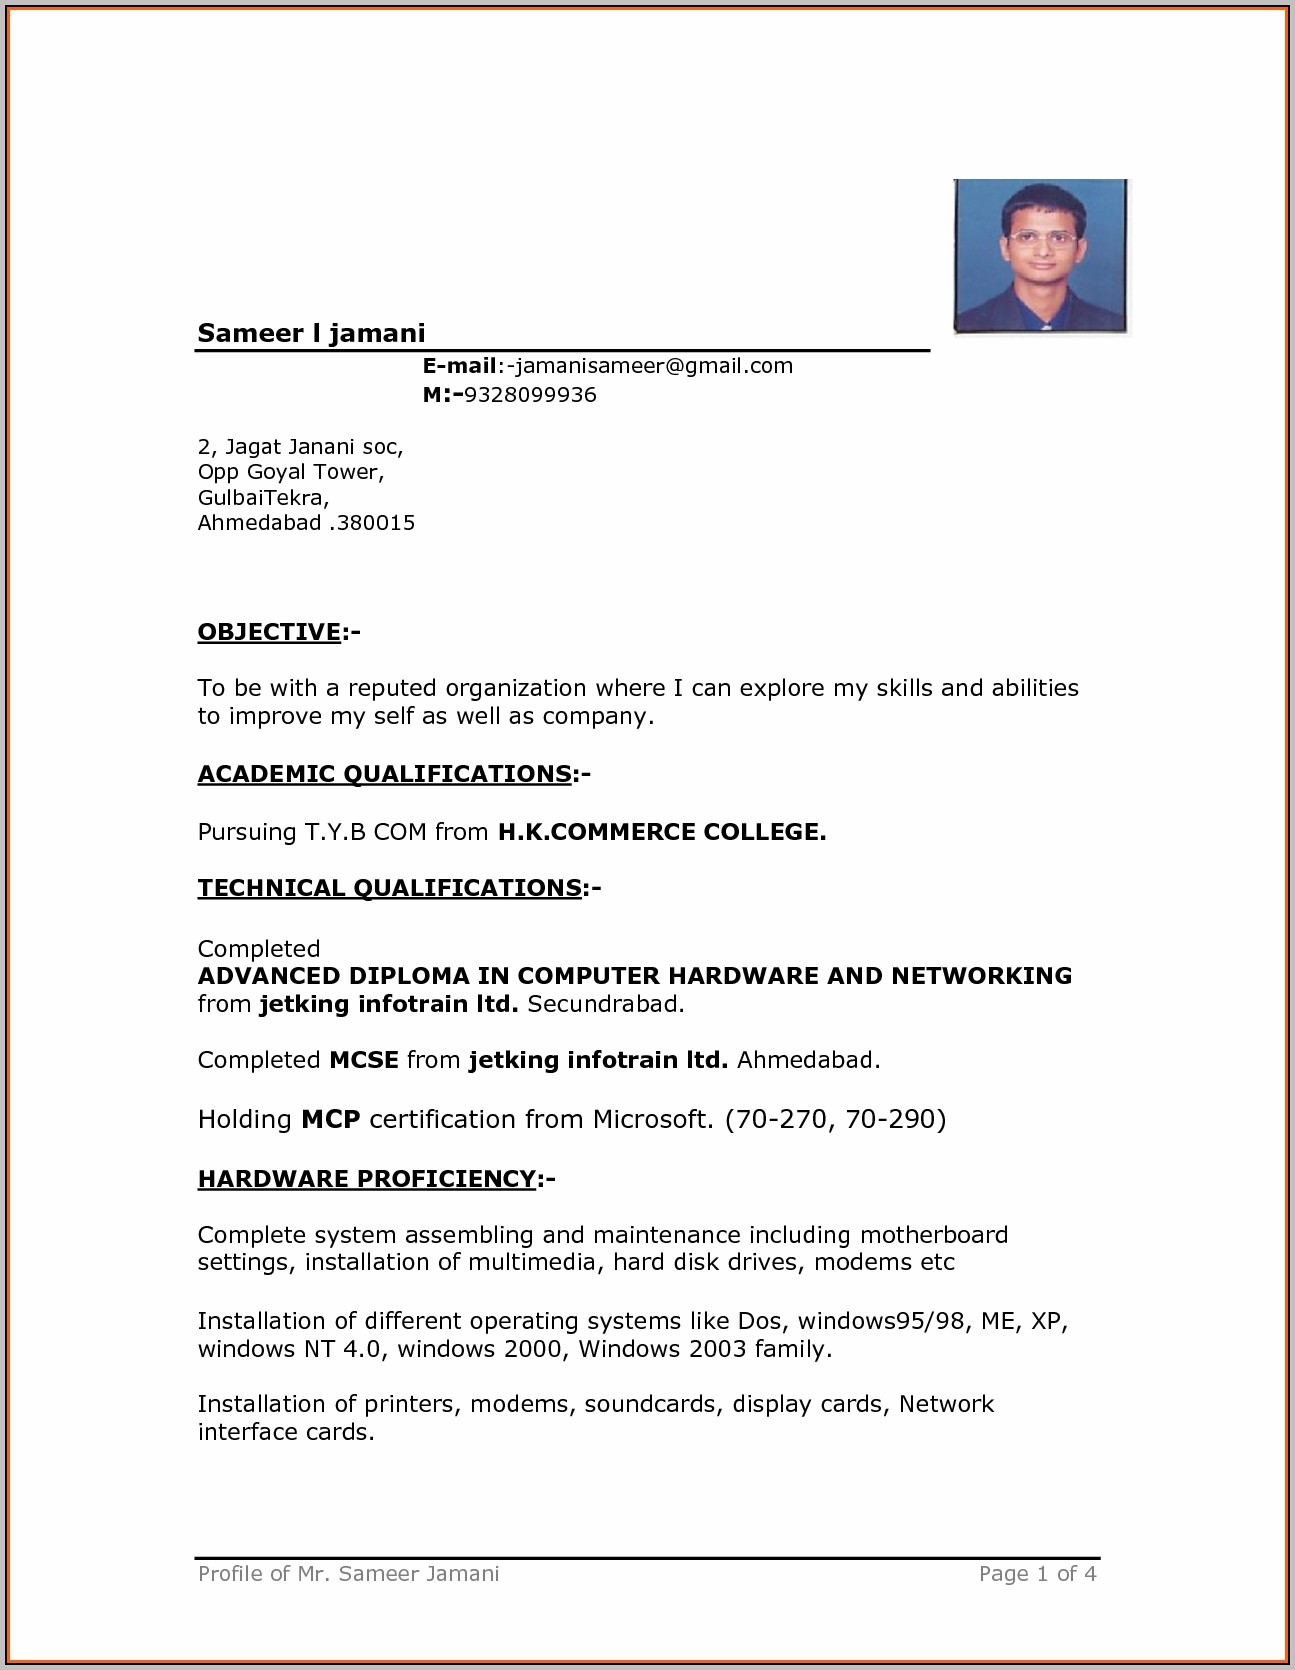 Resume Format In Ms Word Free Download Resume Format In Ms Word Within 81 Captivating Resumes On Microsoft Word